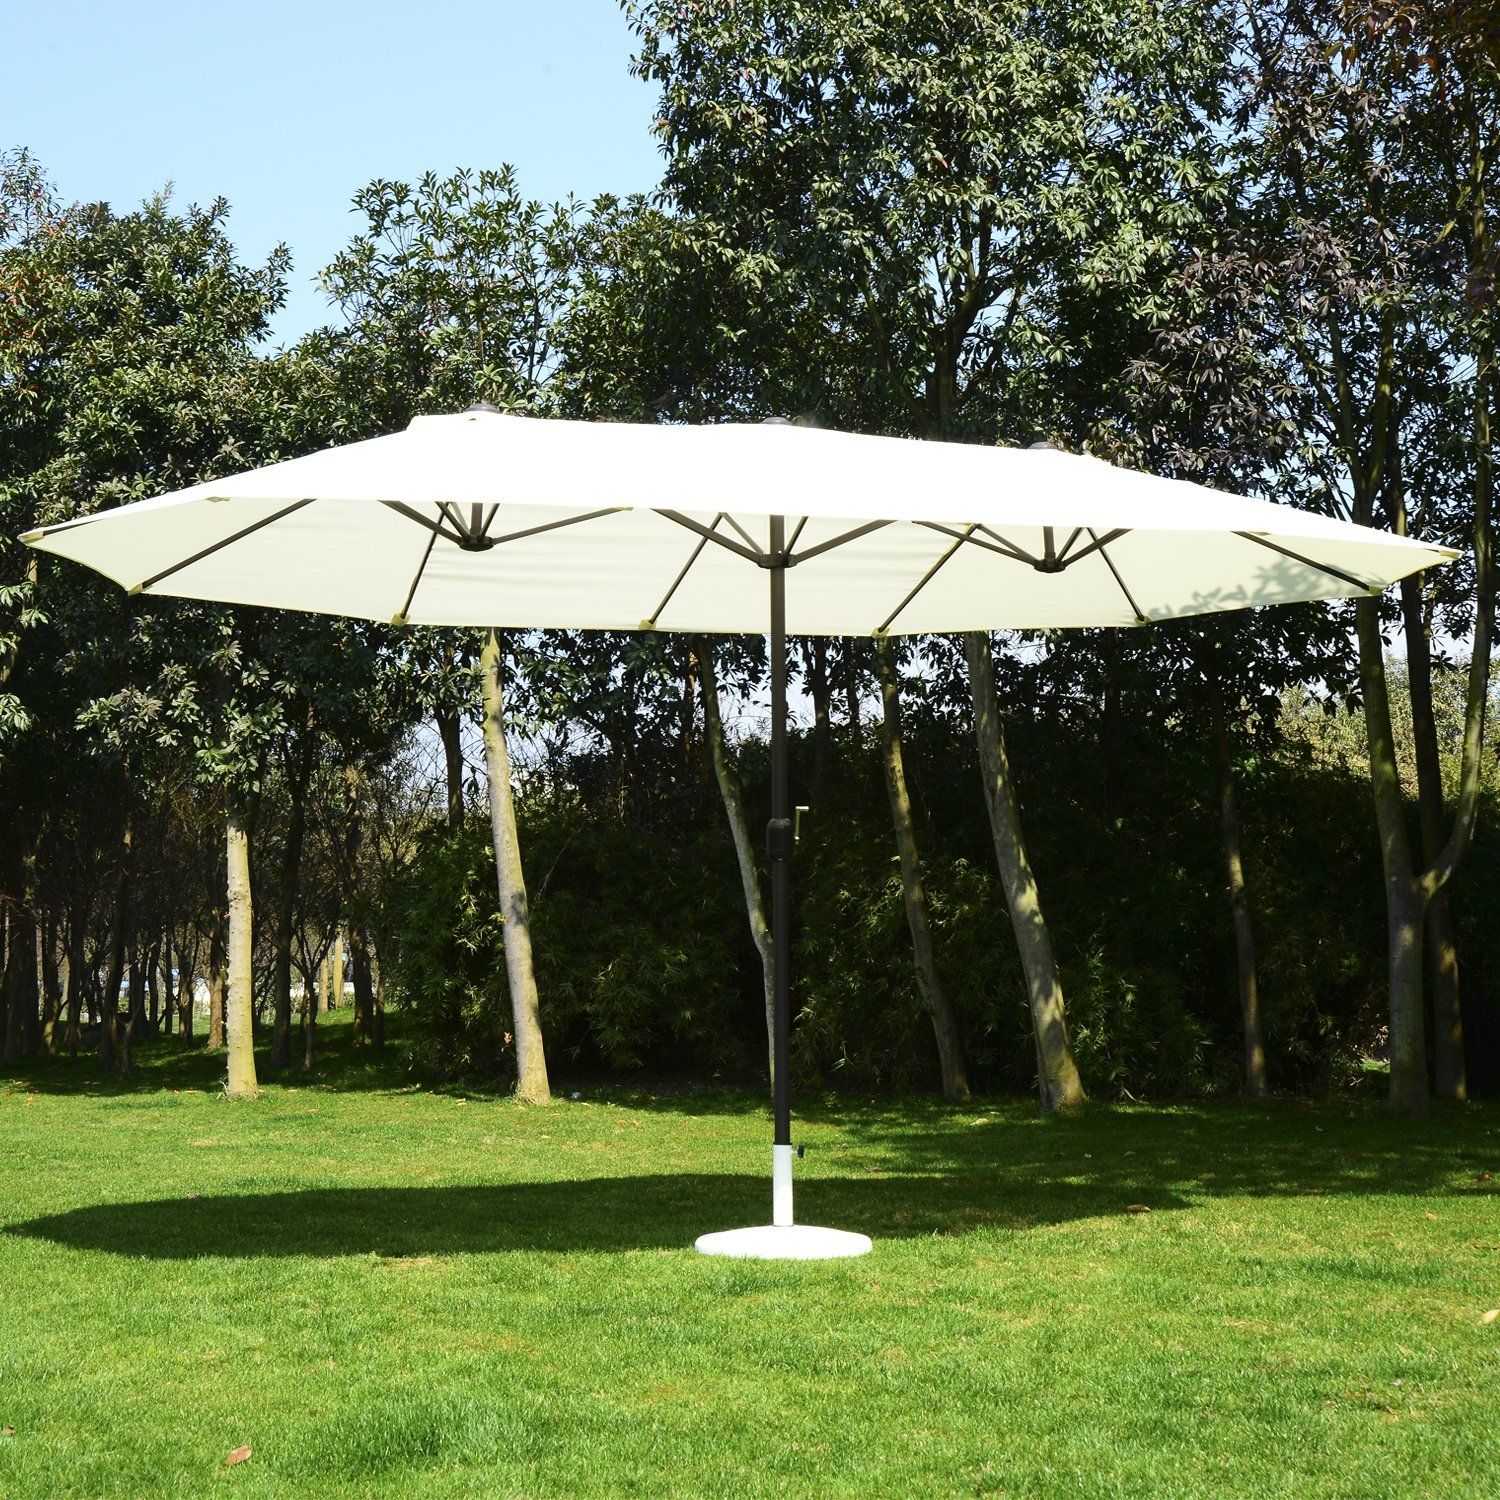 Review of Outsunny 15' Outdoor Patio Market Double-Sided Umbrella - Cream White and Brown